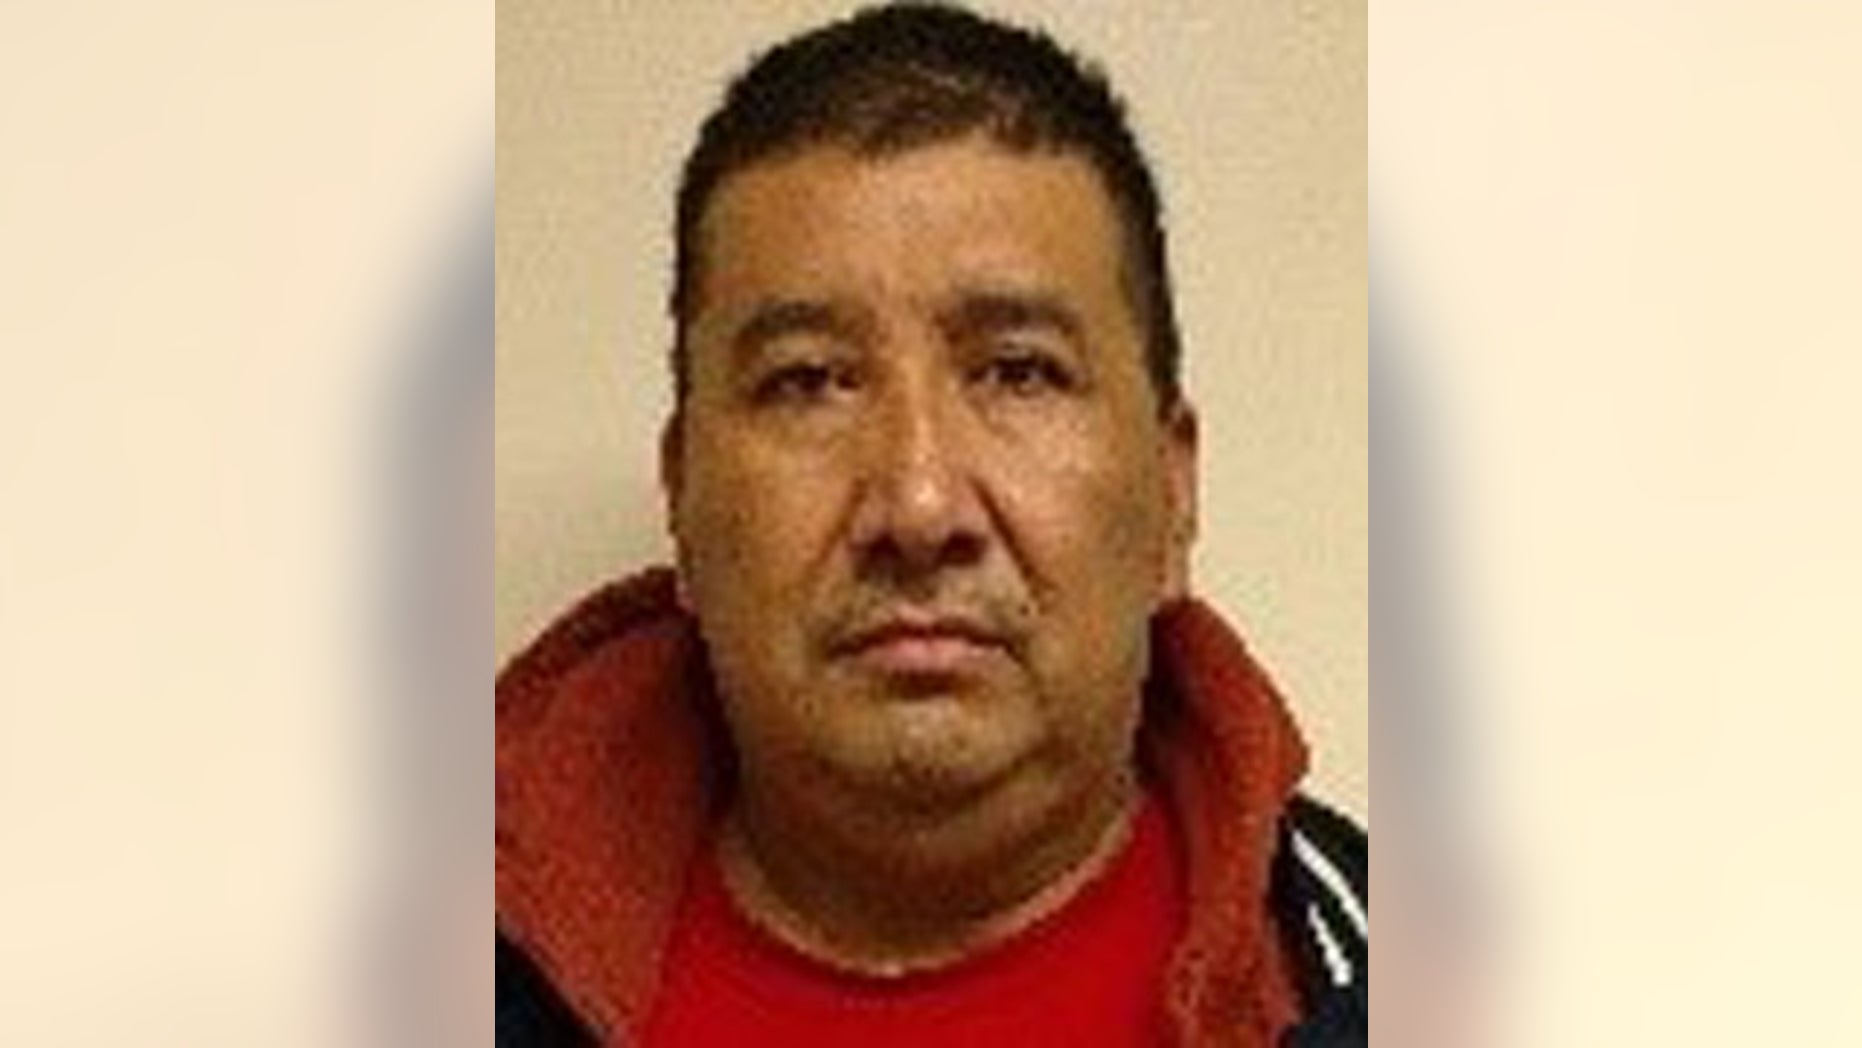 Elmer Campos-Martinez was charged with second-degree murder following the discovery of a woman's body behind a dumpster in Maryland.